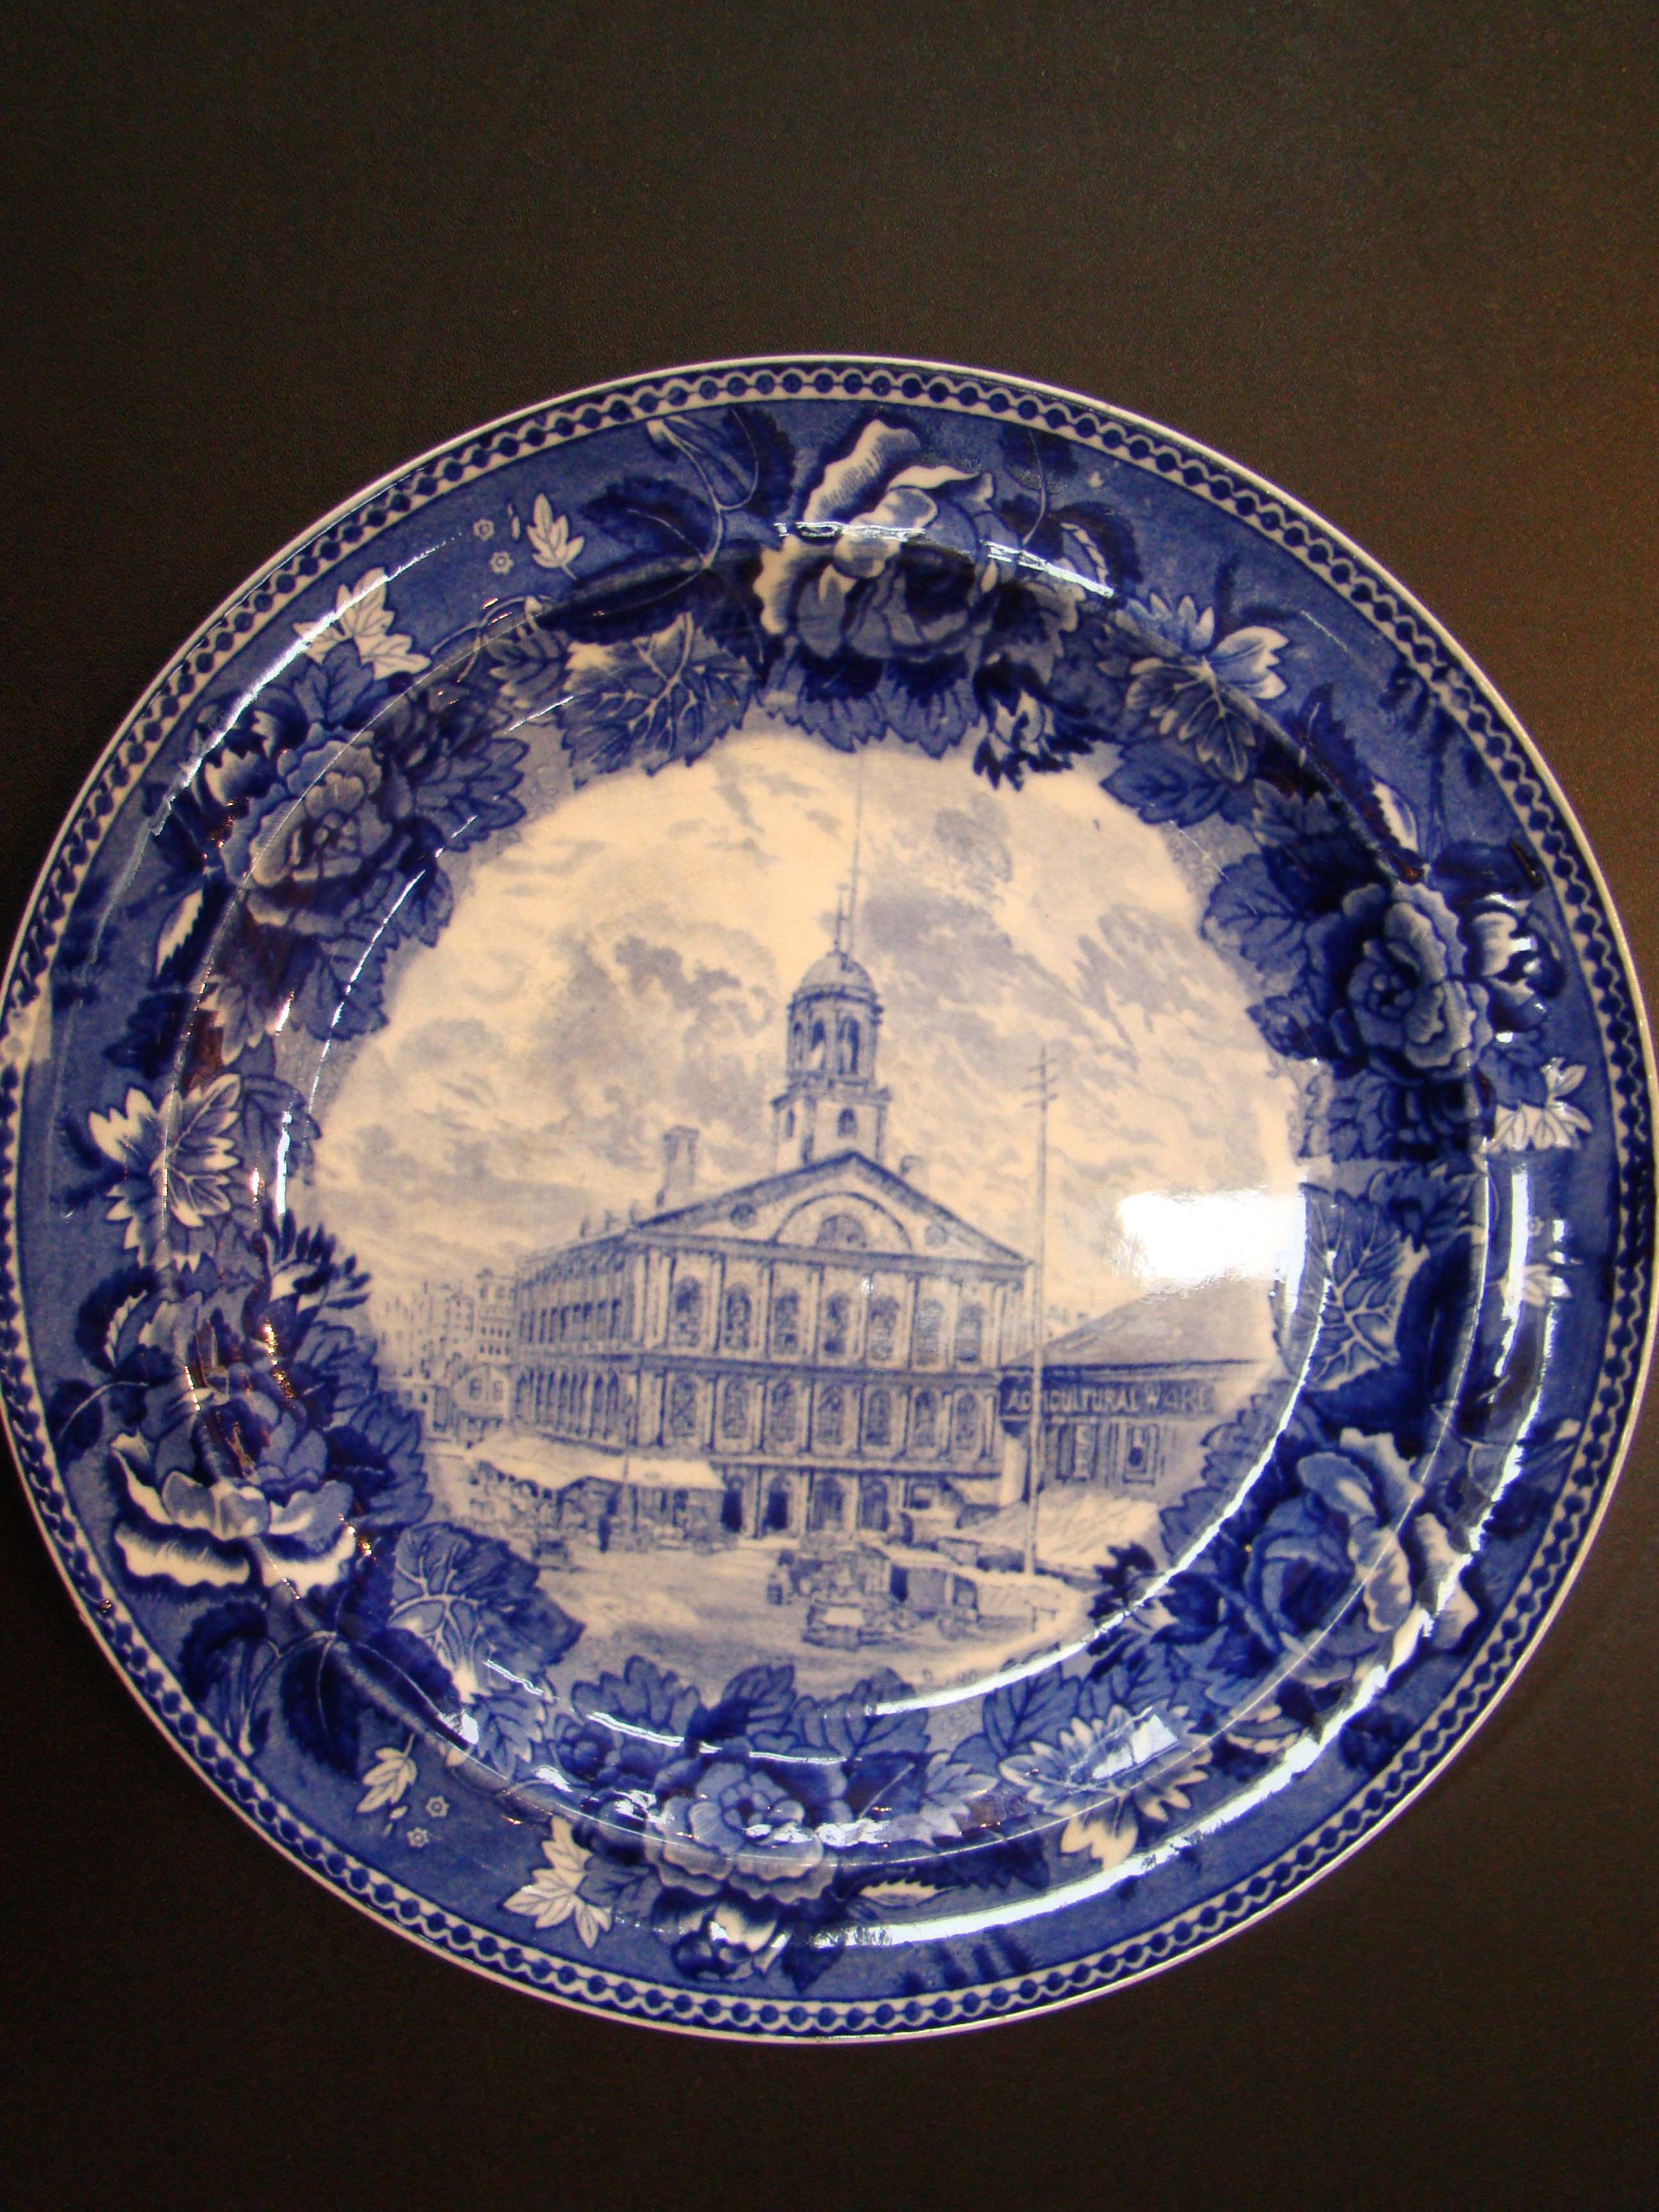 click to view detailed description of A fine Wegwood souvenir plate made in 1899 depicting Faneuil Hall in Boston